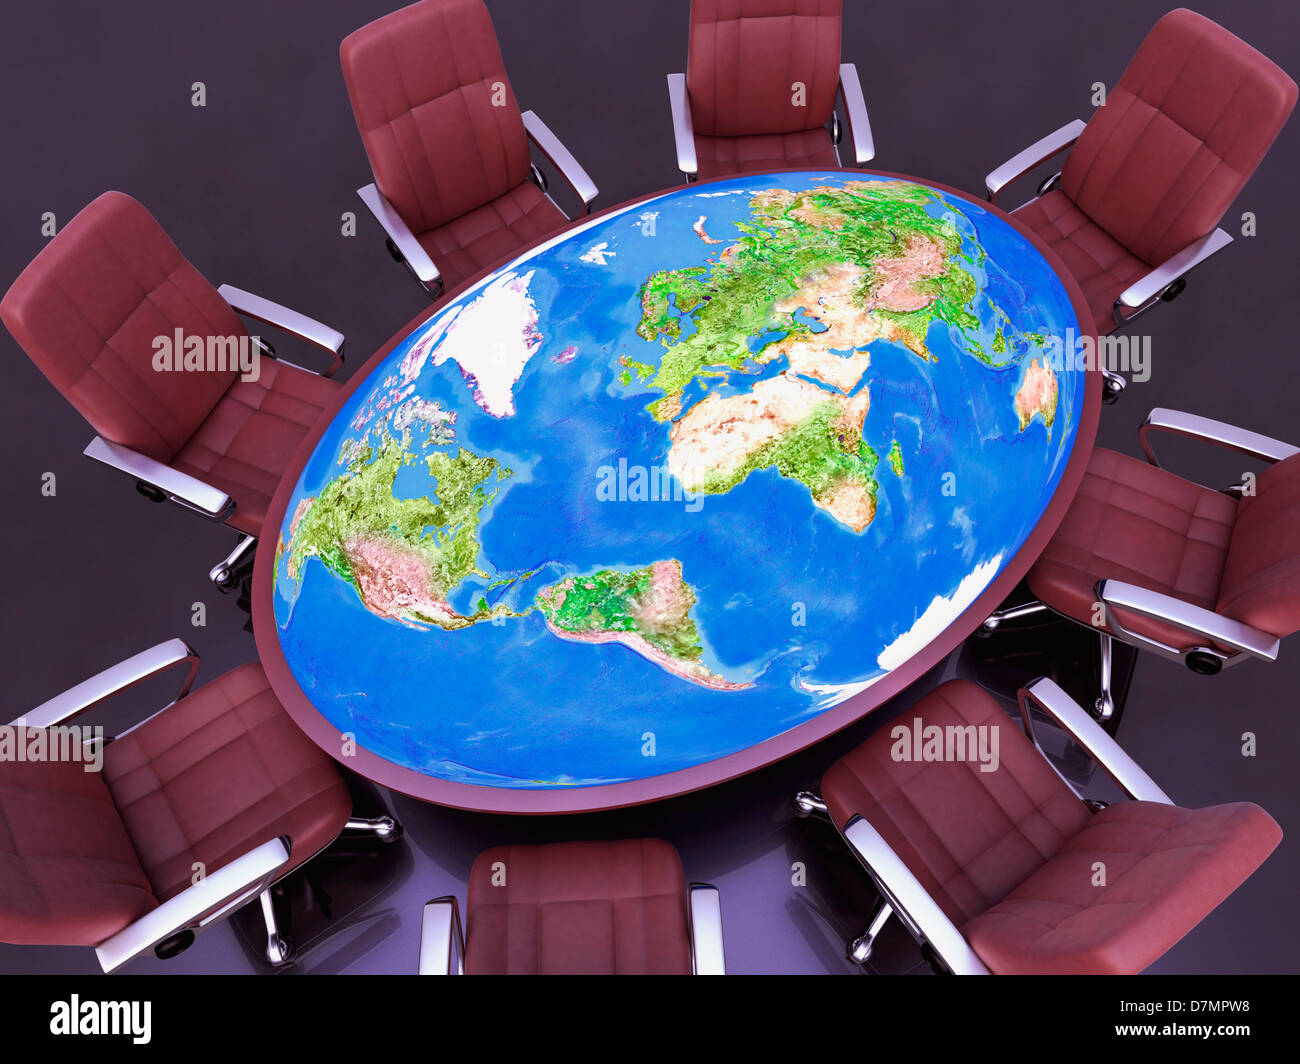 International relation, conceptual image - Stock Image